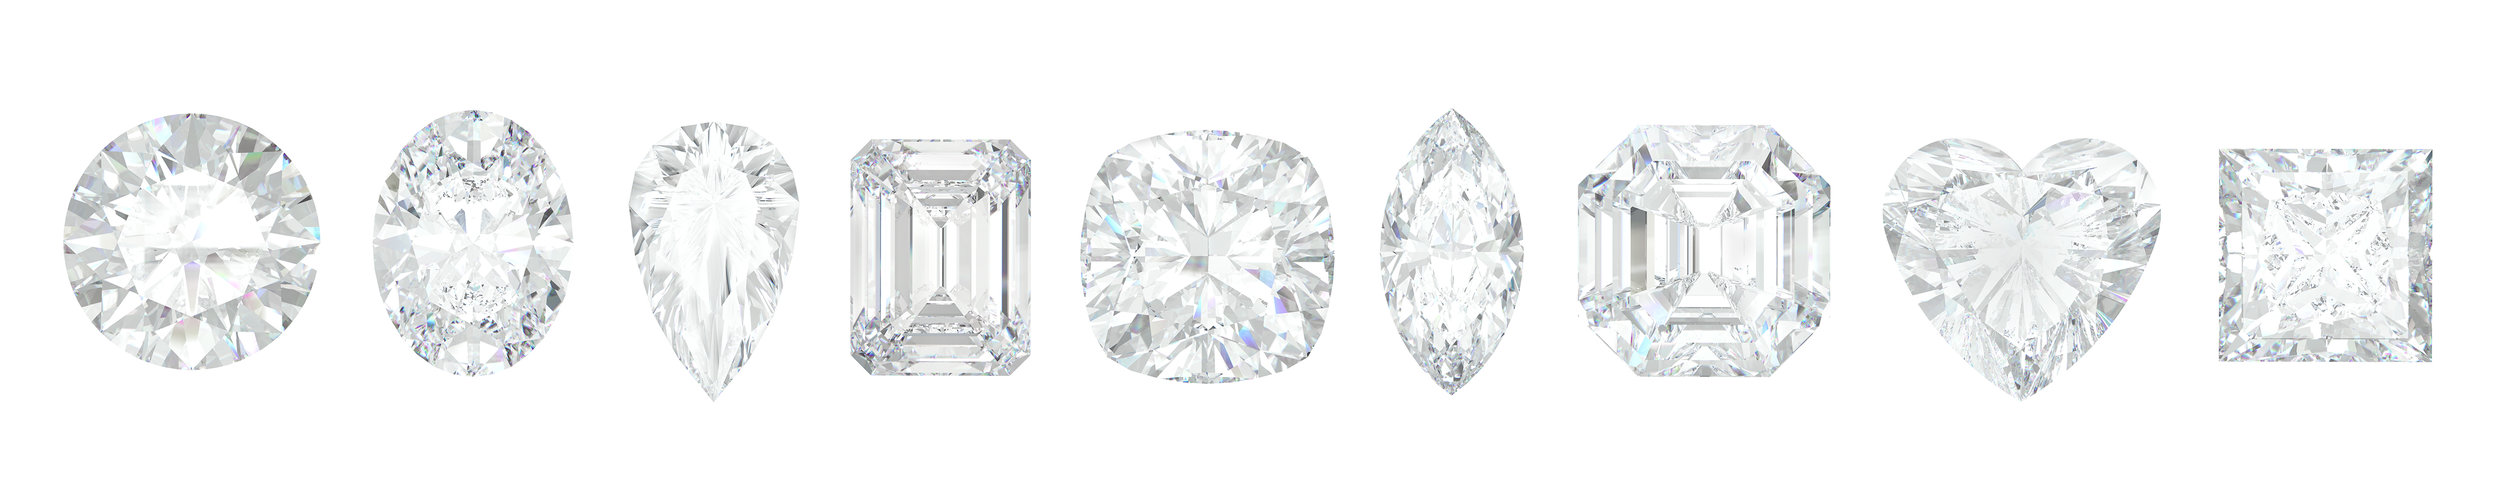 Diamonds row 001.jpg